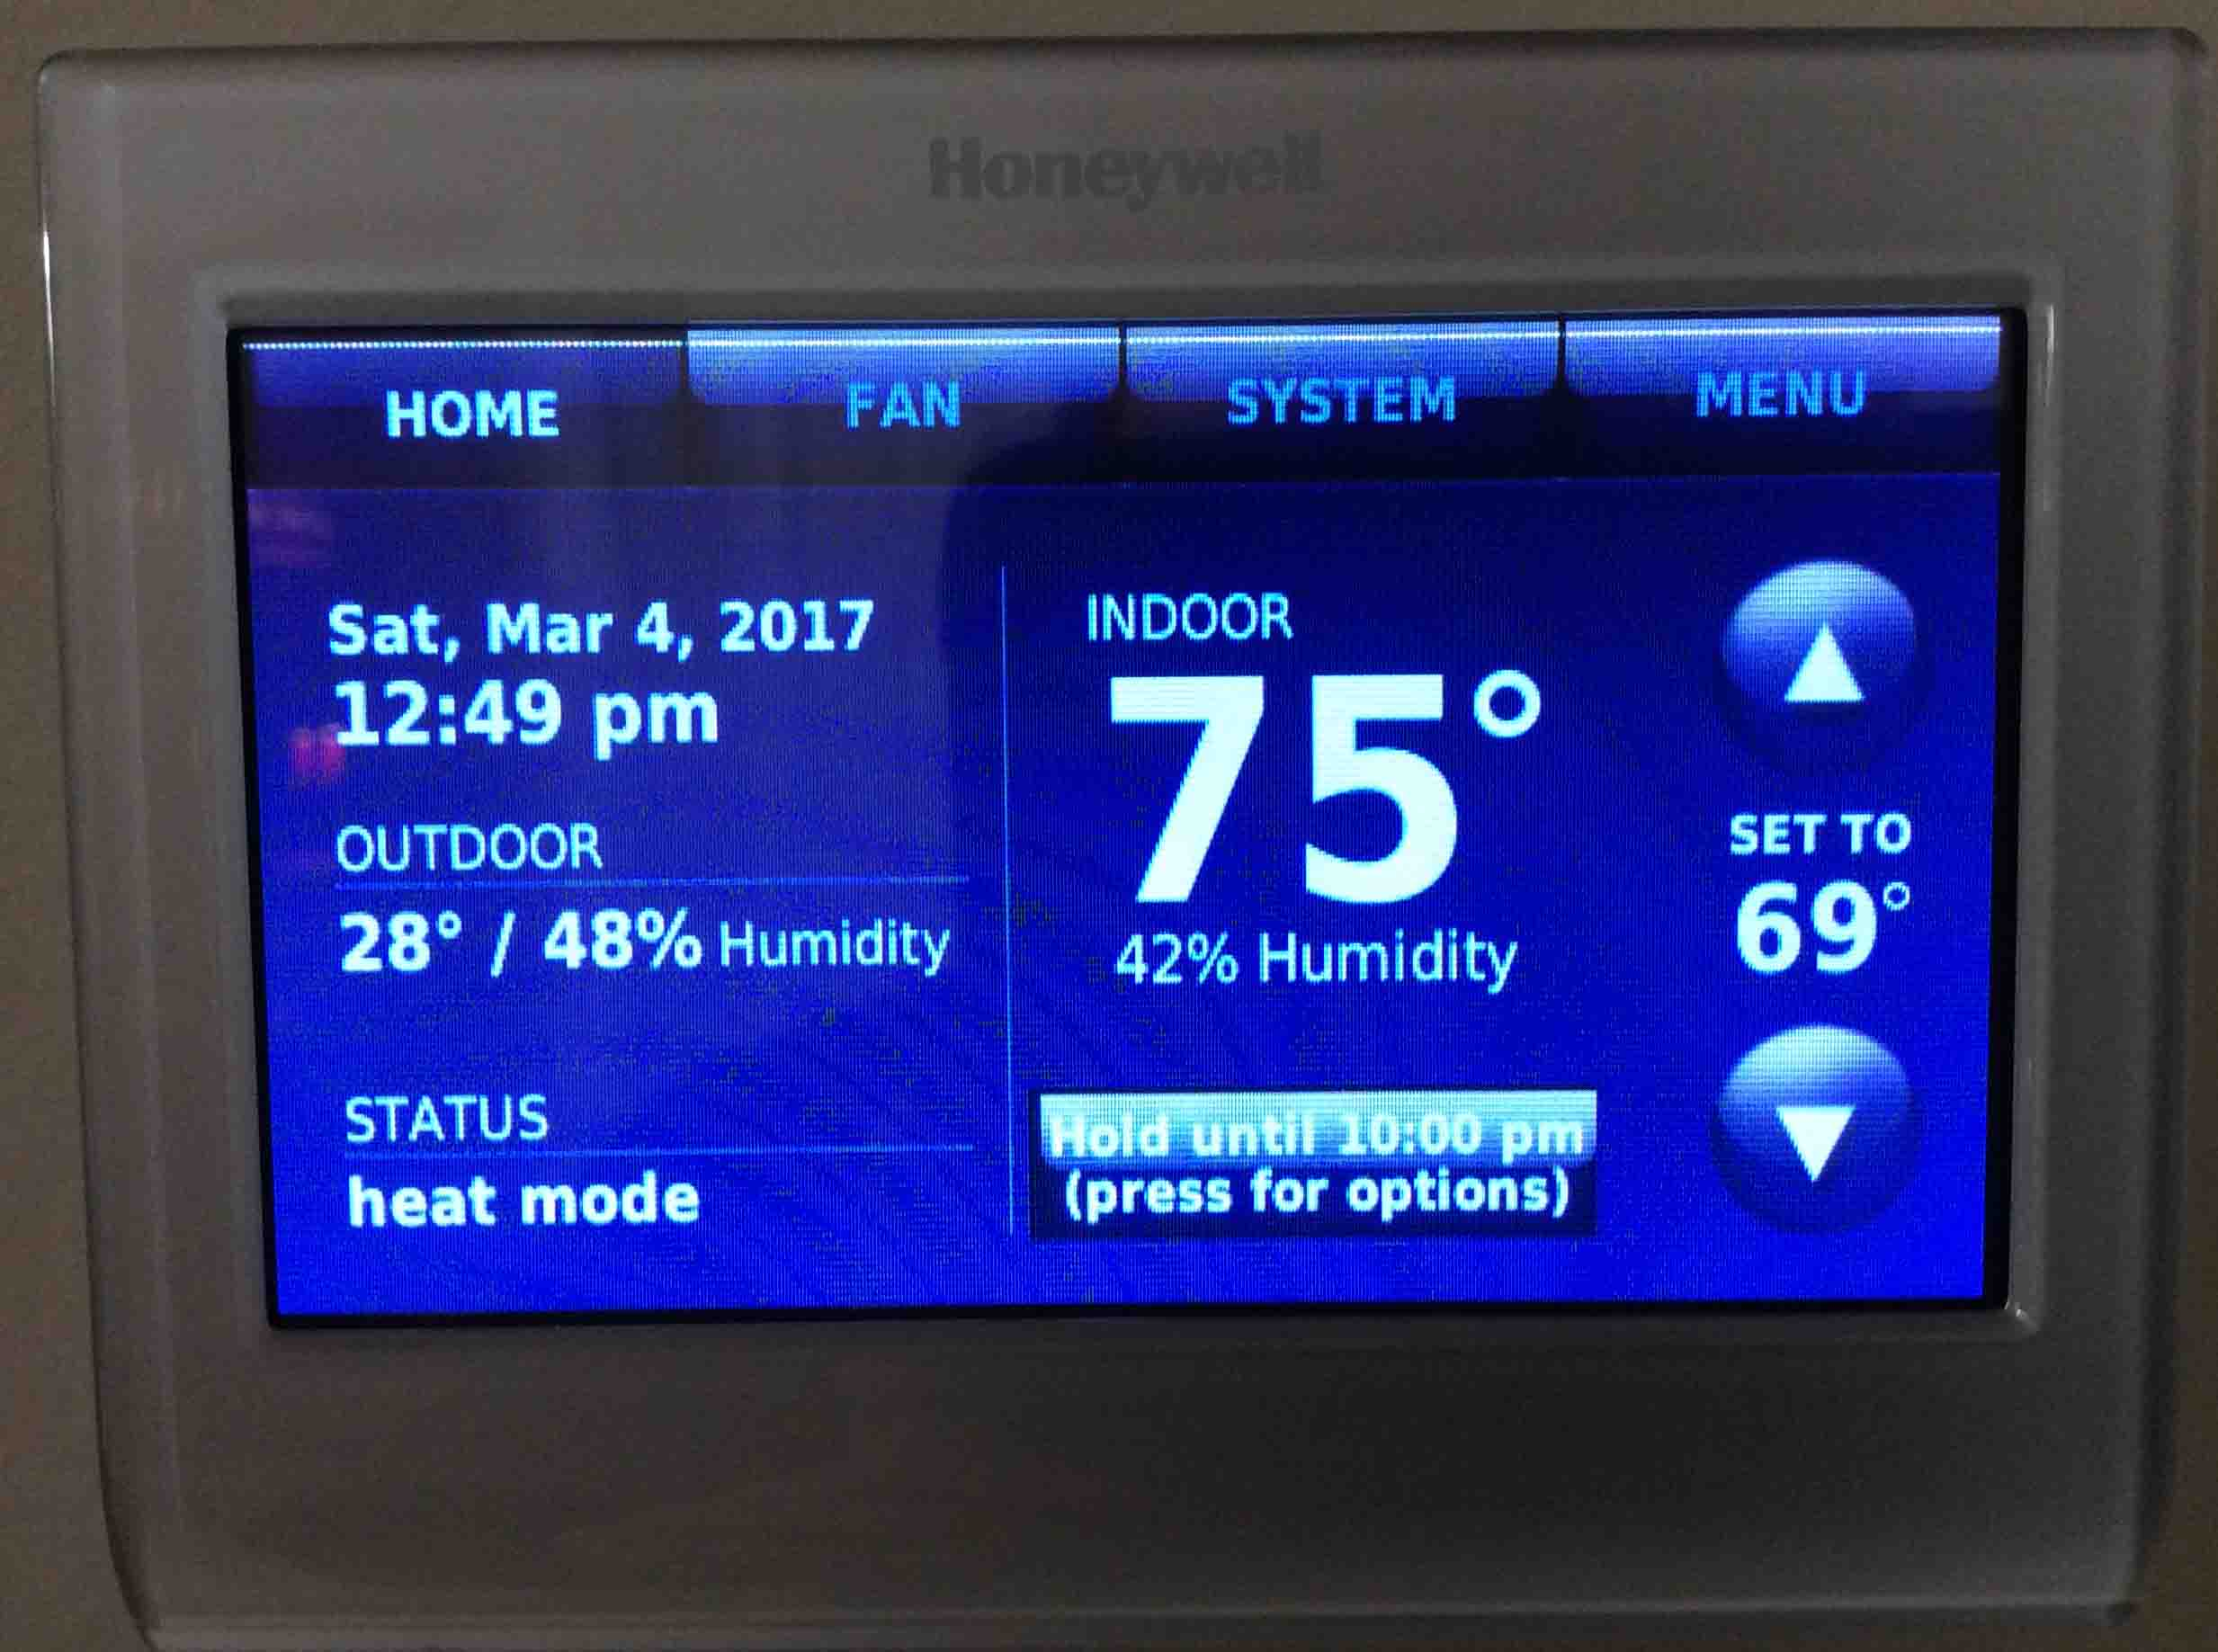 Honeywell Thermostat Not Reaching Set Temperature